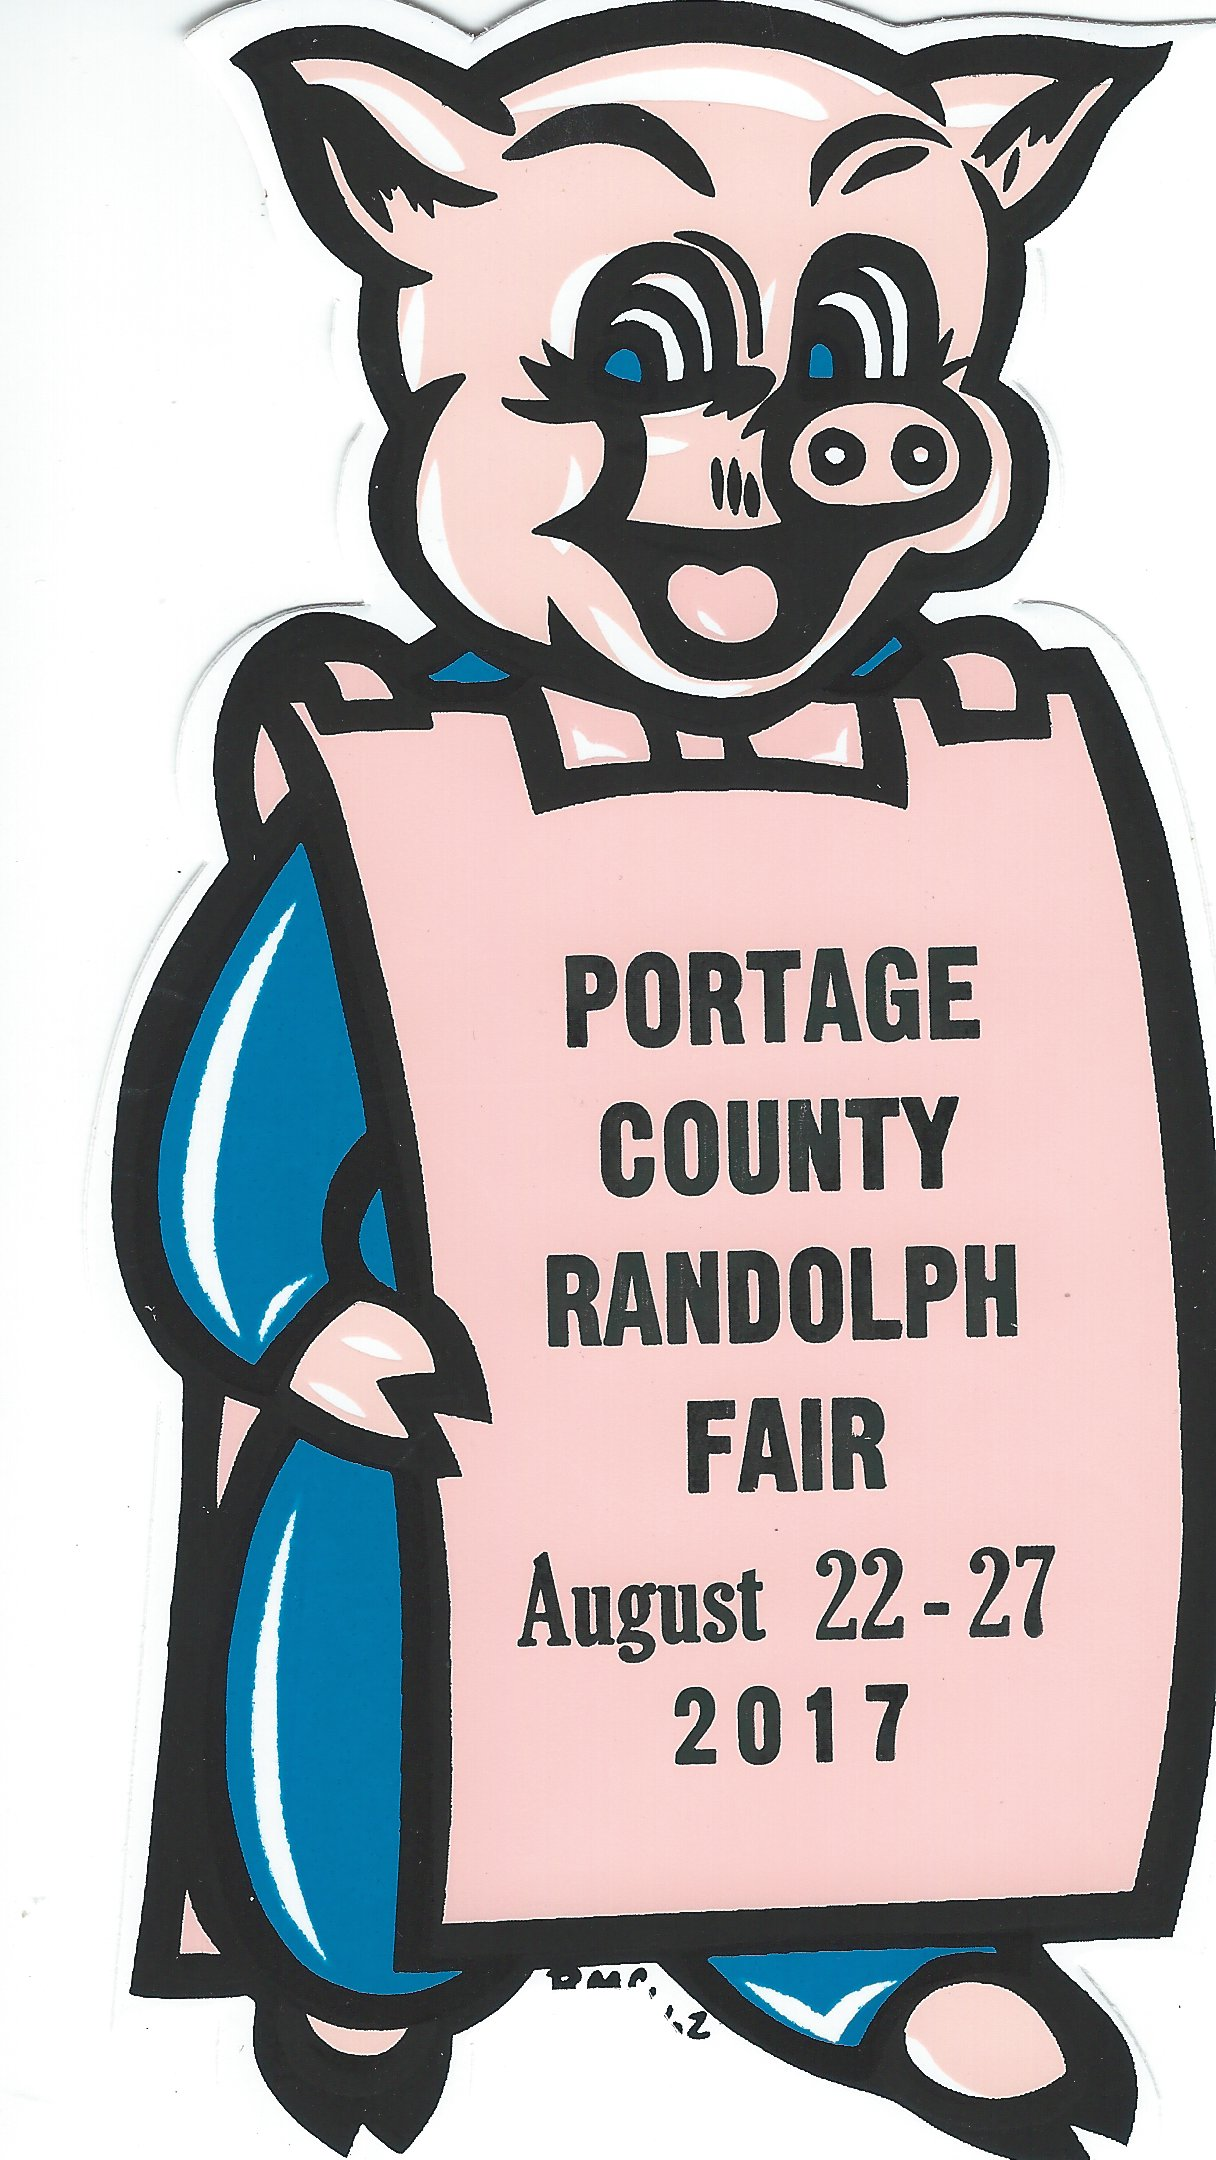 Portage County Fair 2017